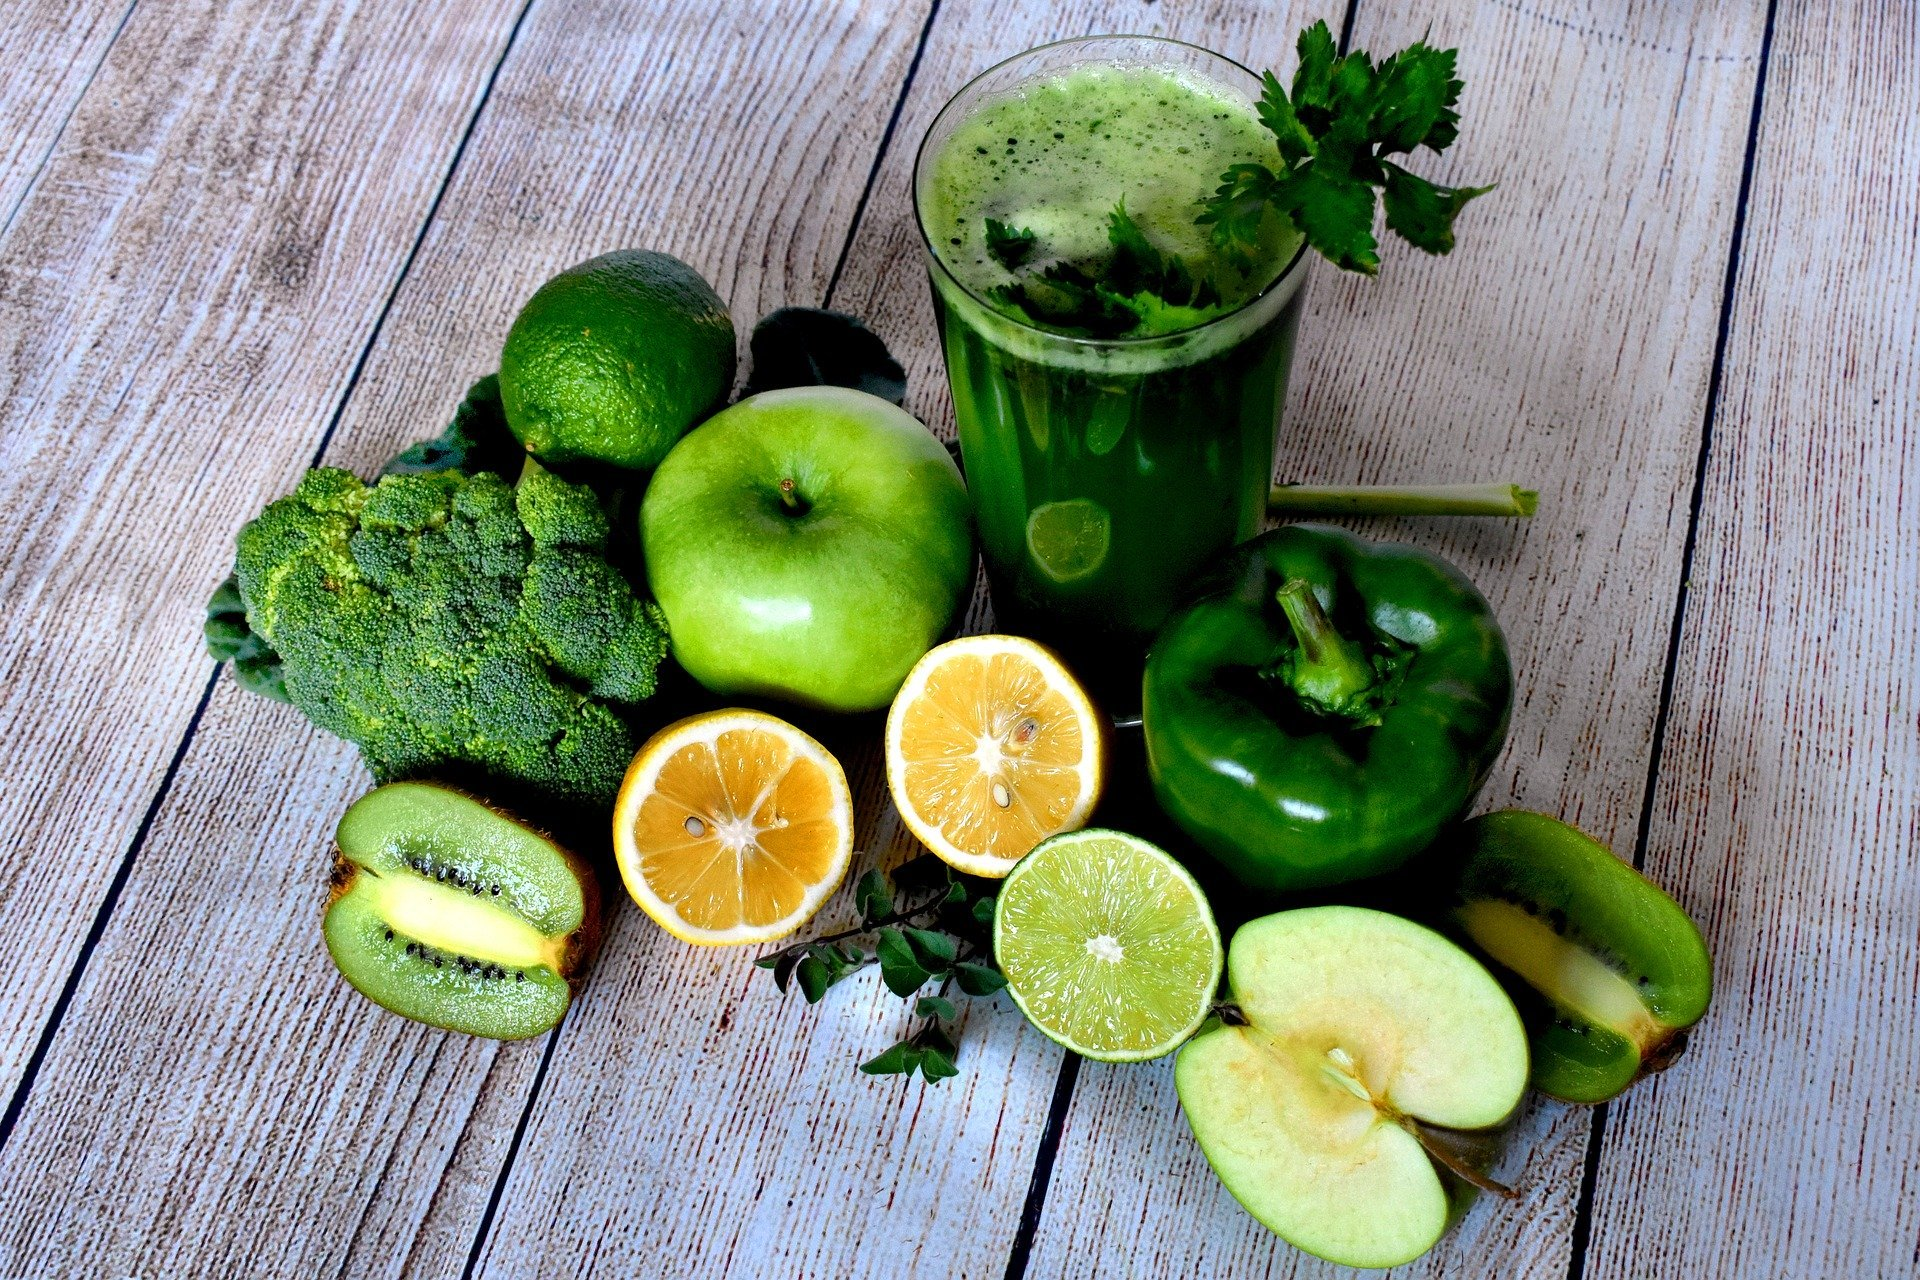 Increase Glutathione Naturally. veggies. green. vegetable juice. green fruits. fruits. www.blisslife.in